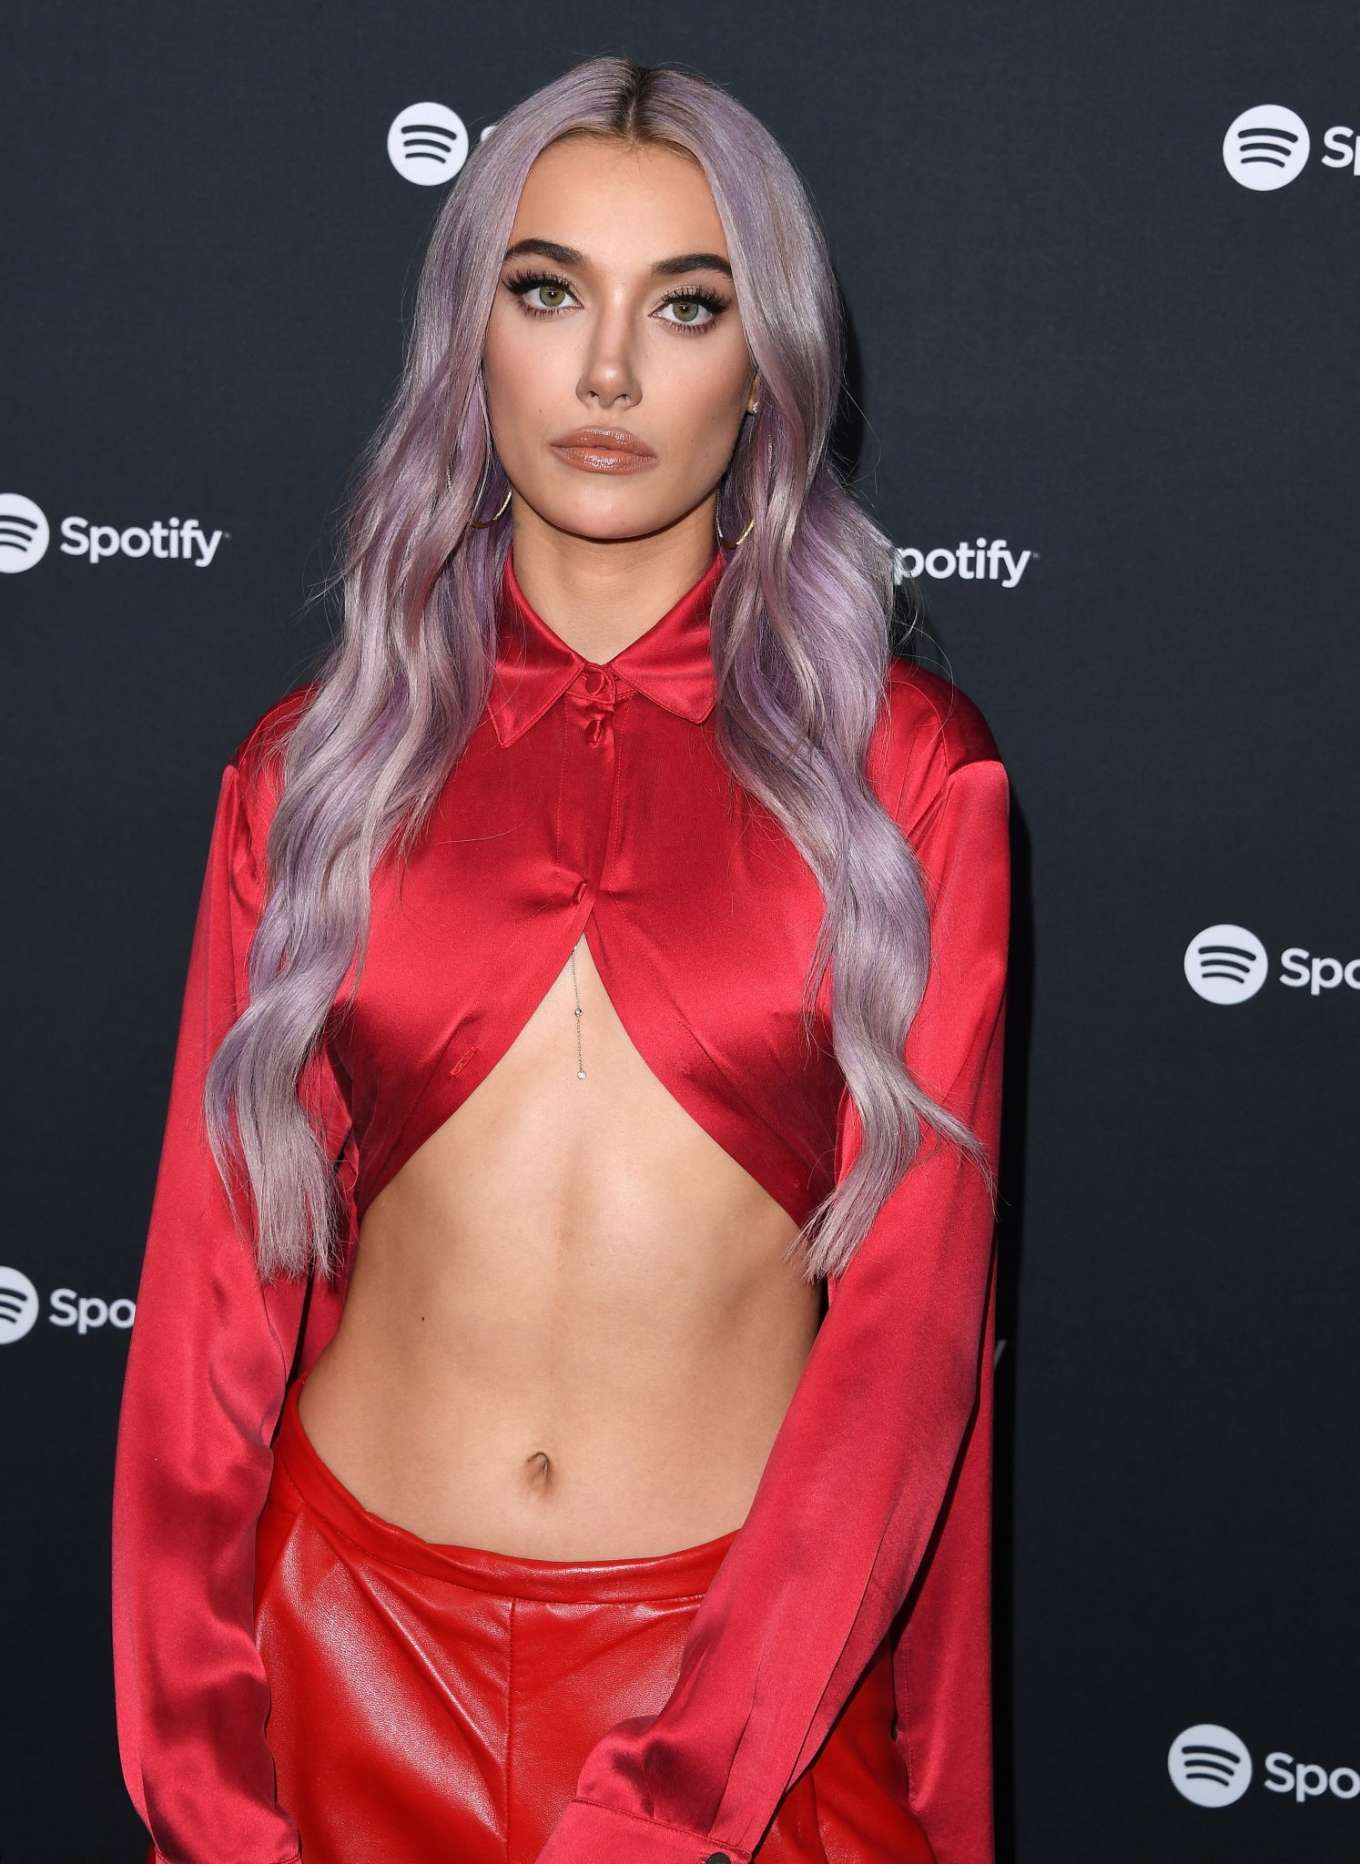 Olivia O'Brien - Spotify 'Best New Artist' Party in Los Angeles